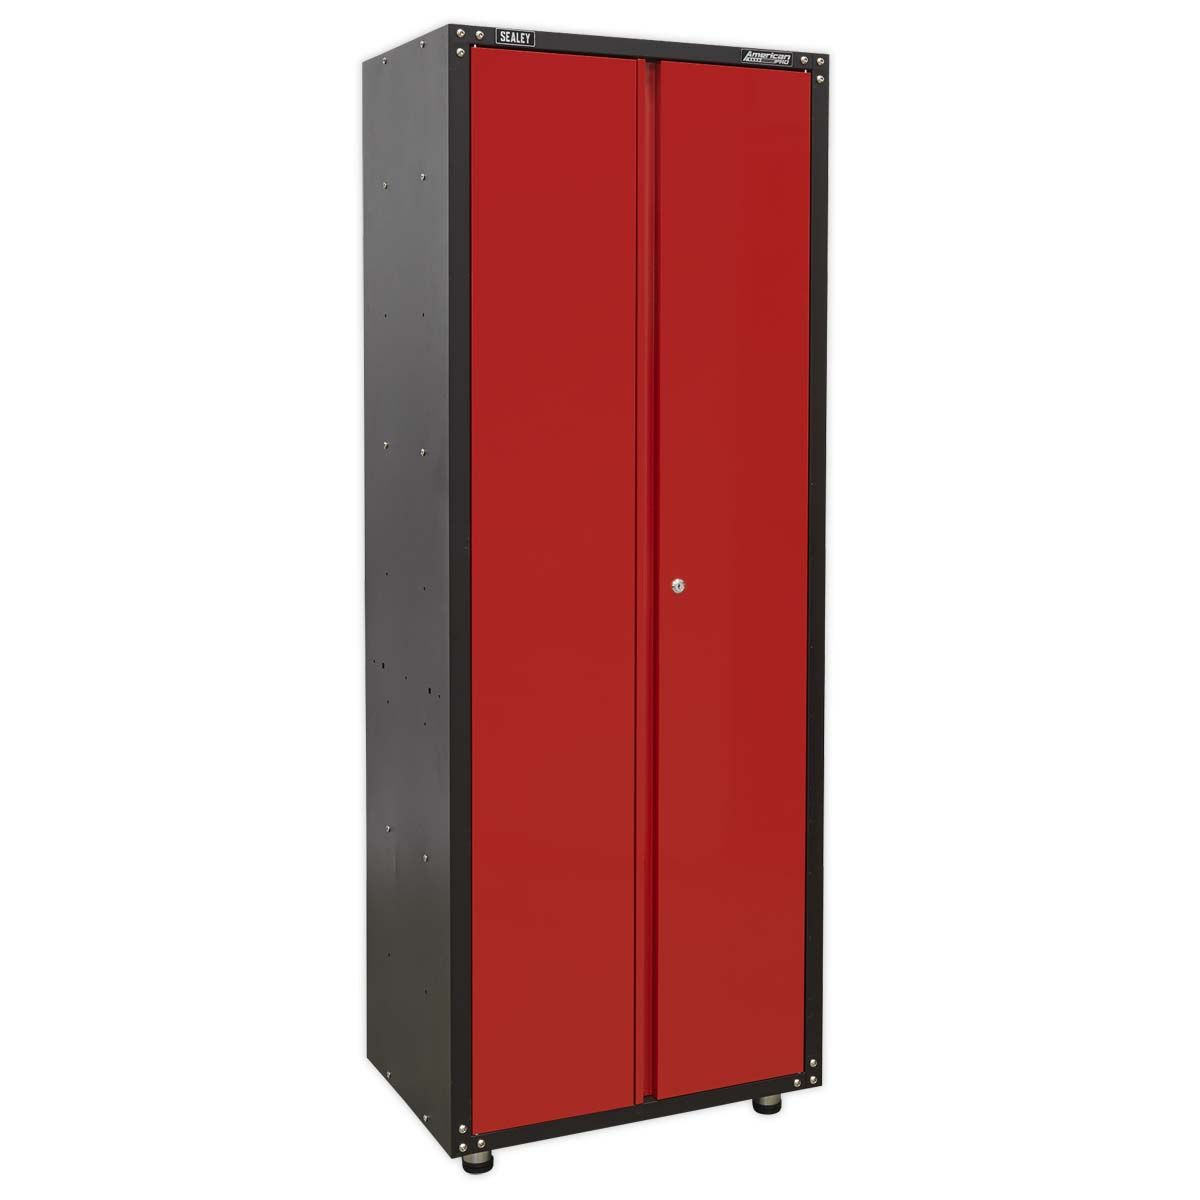 Sealey American Pro Modular 2 Door Full Height Cabinet 665mm